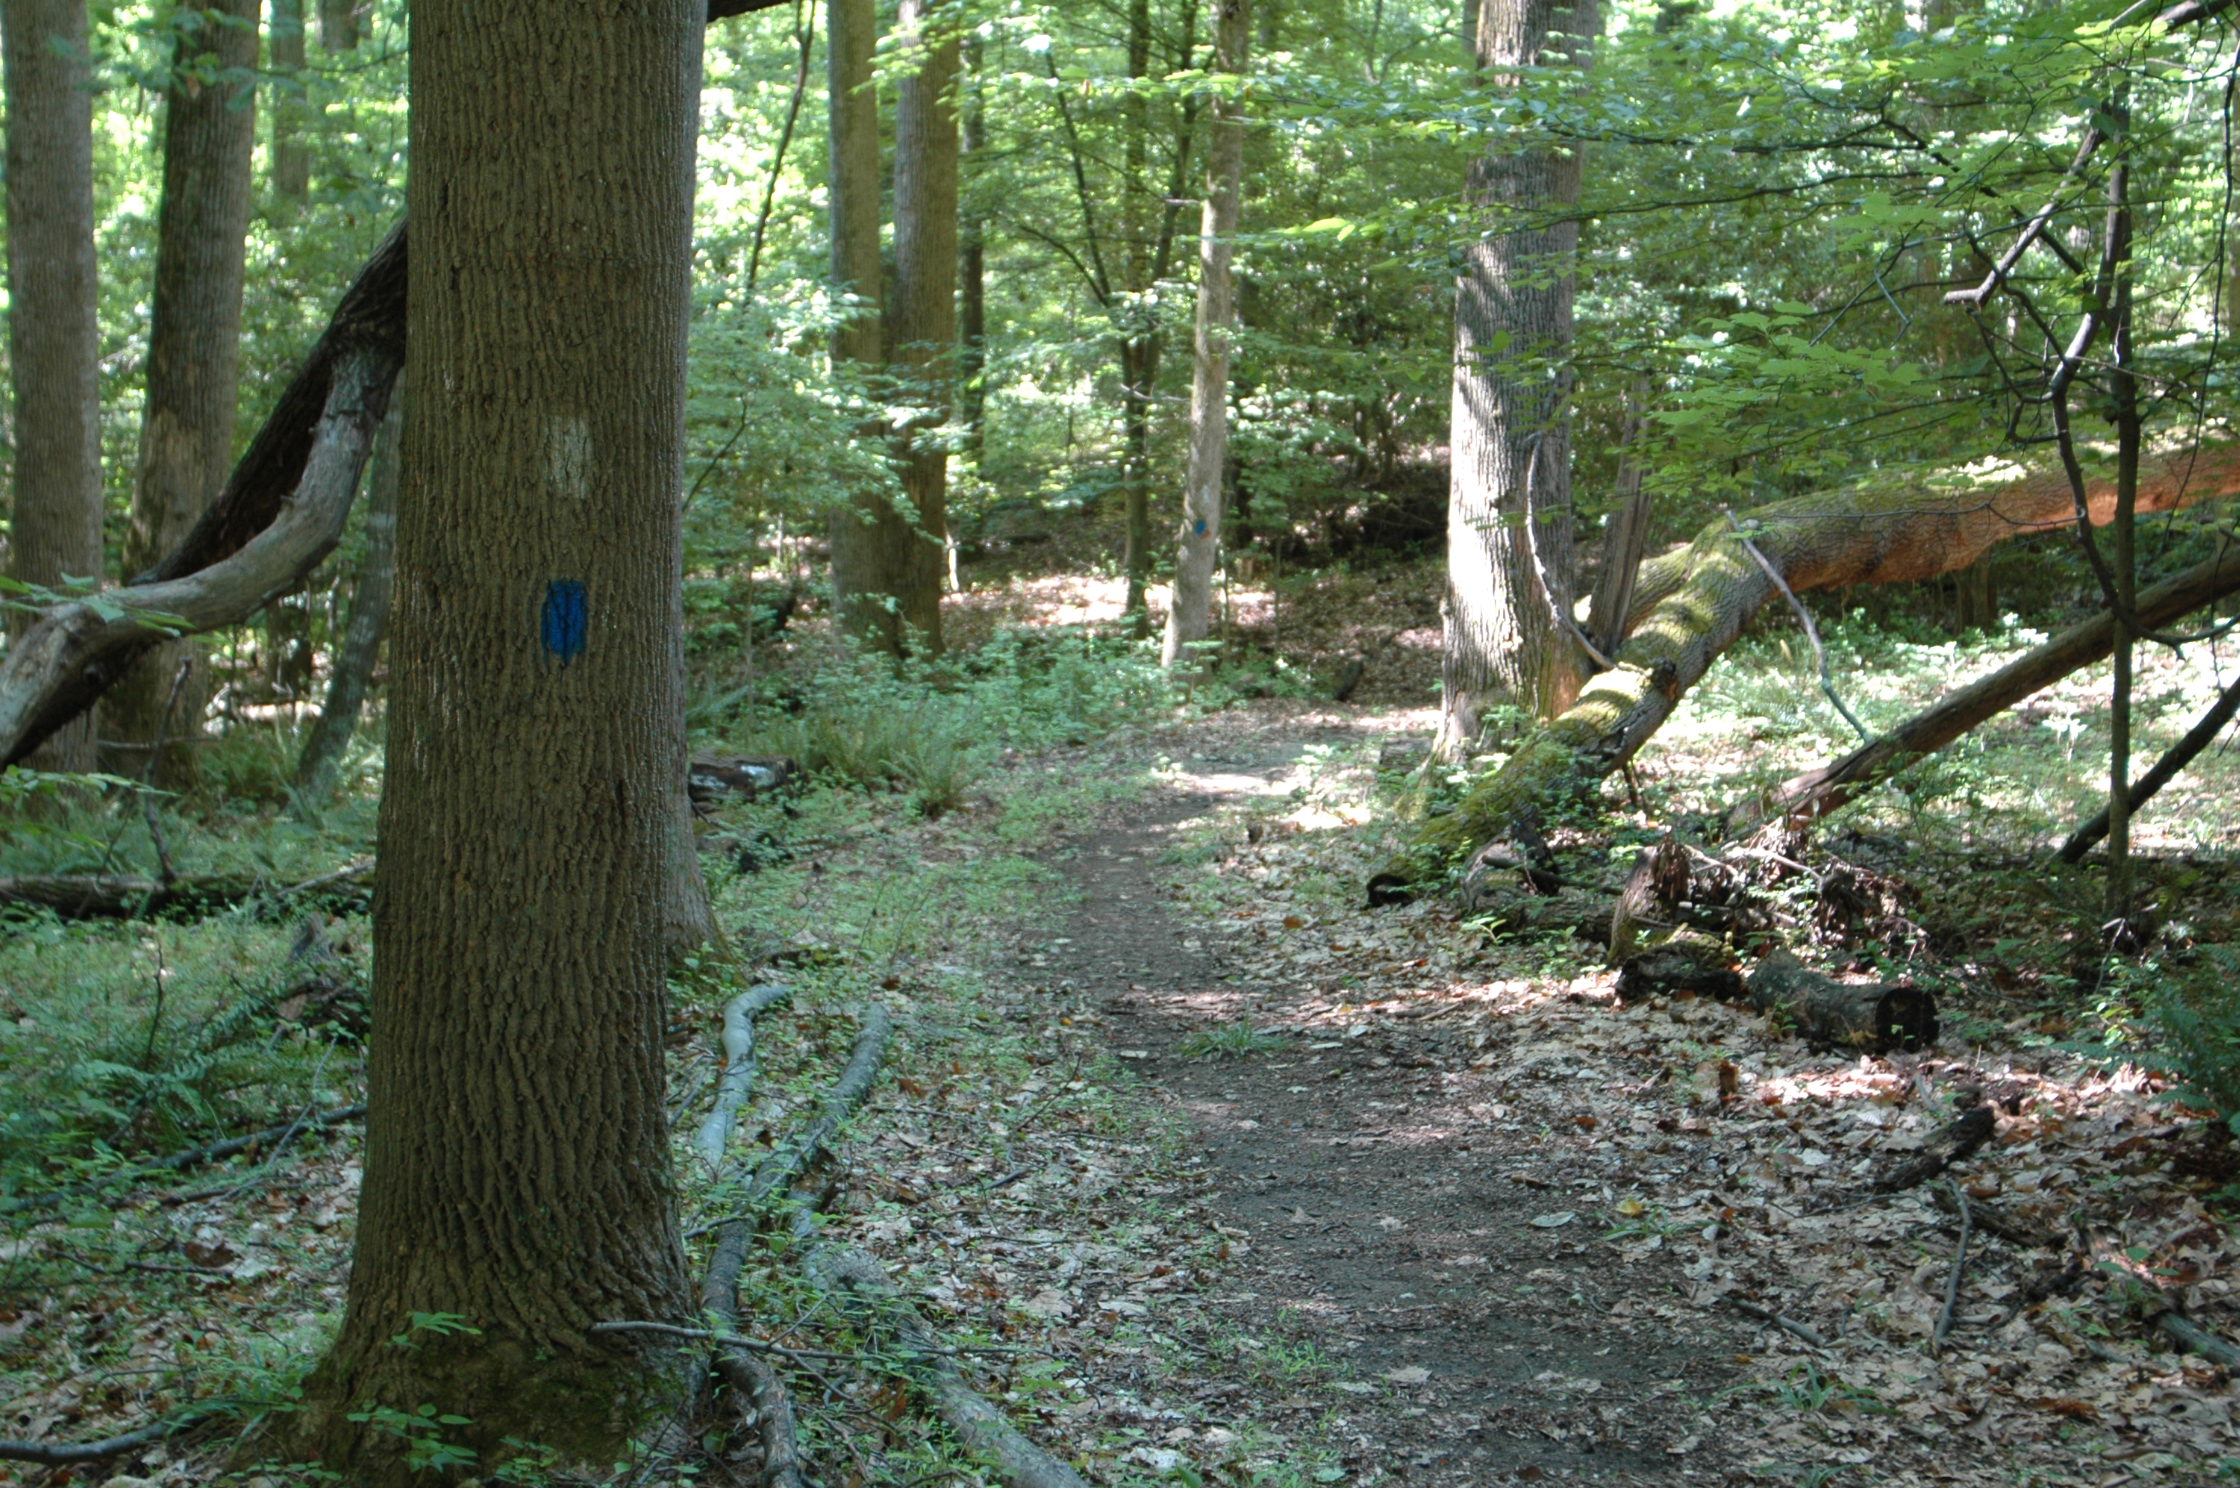 Pine Tree's hiking trail showing trail markers.